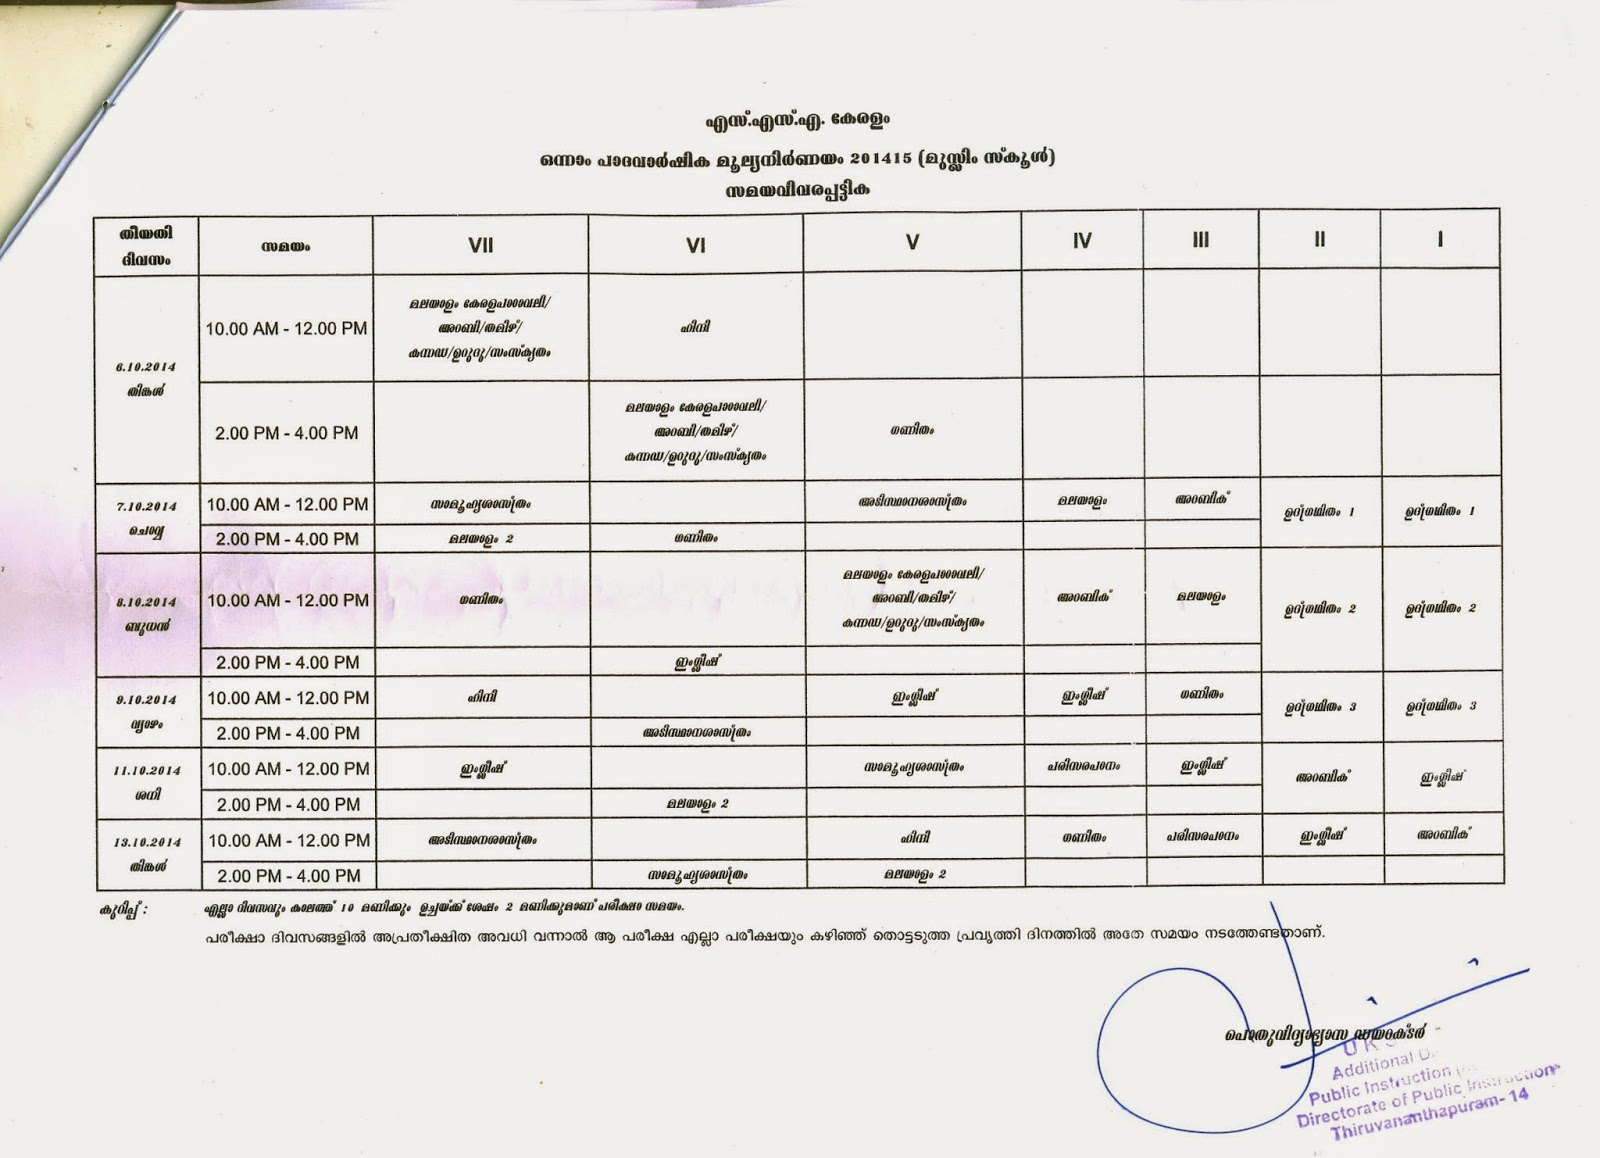 TIRUR BRC: FIRST TERMINAL EXAMINATION TIME TABLE 2014-2015